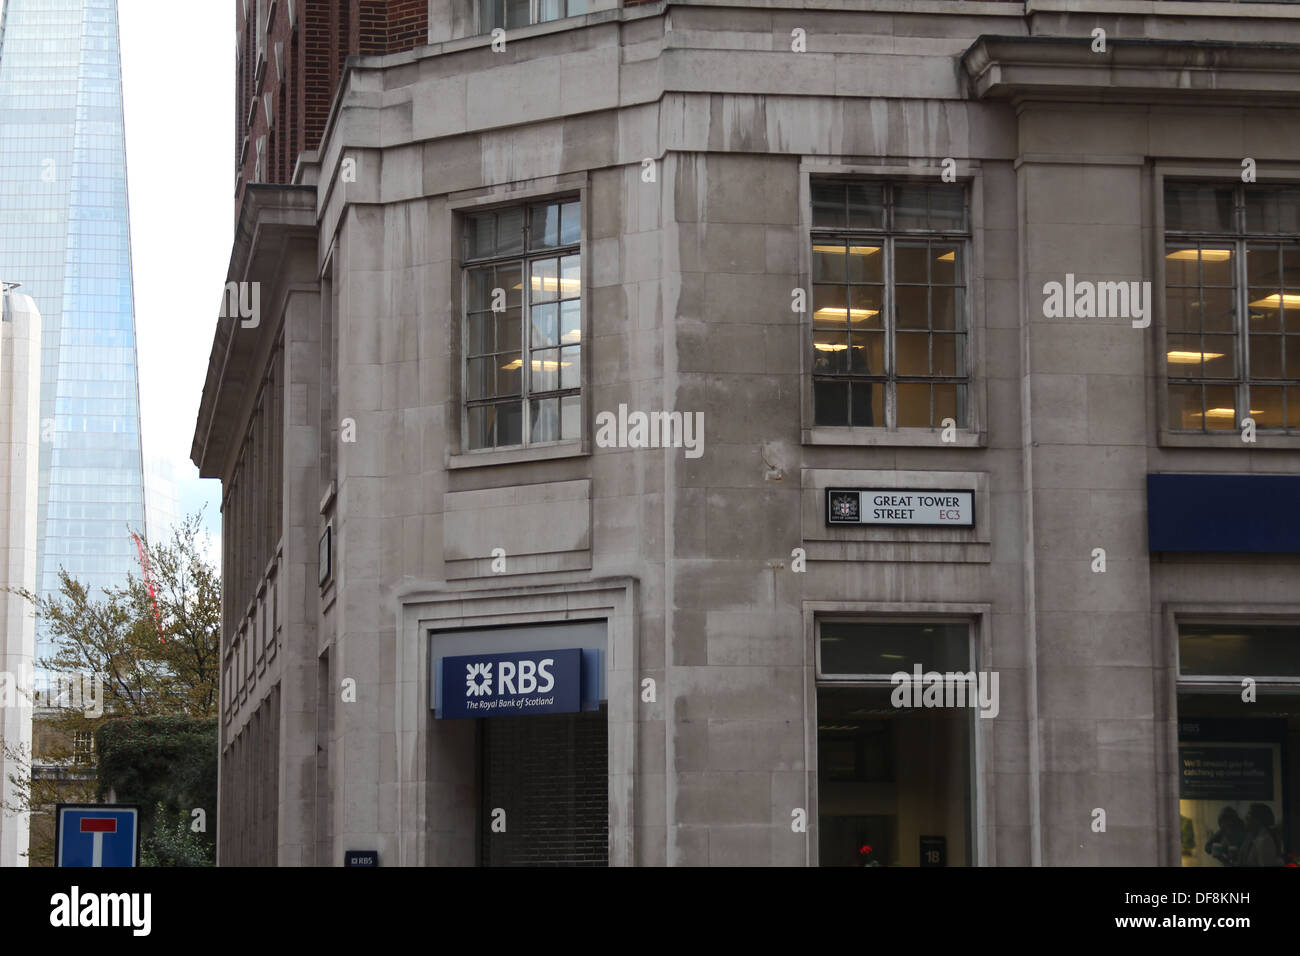 royal bank of scotland london